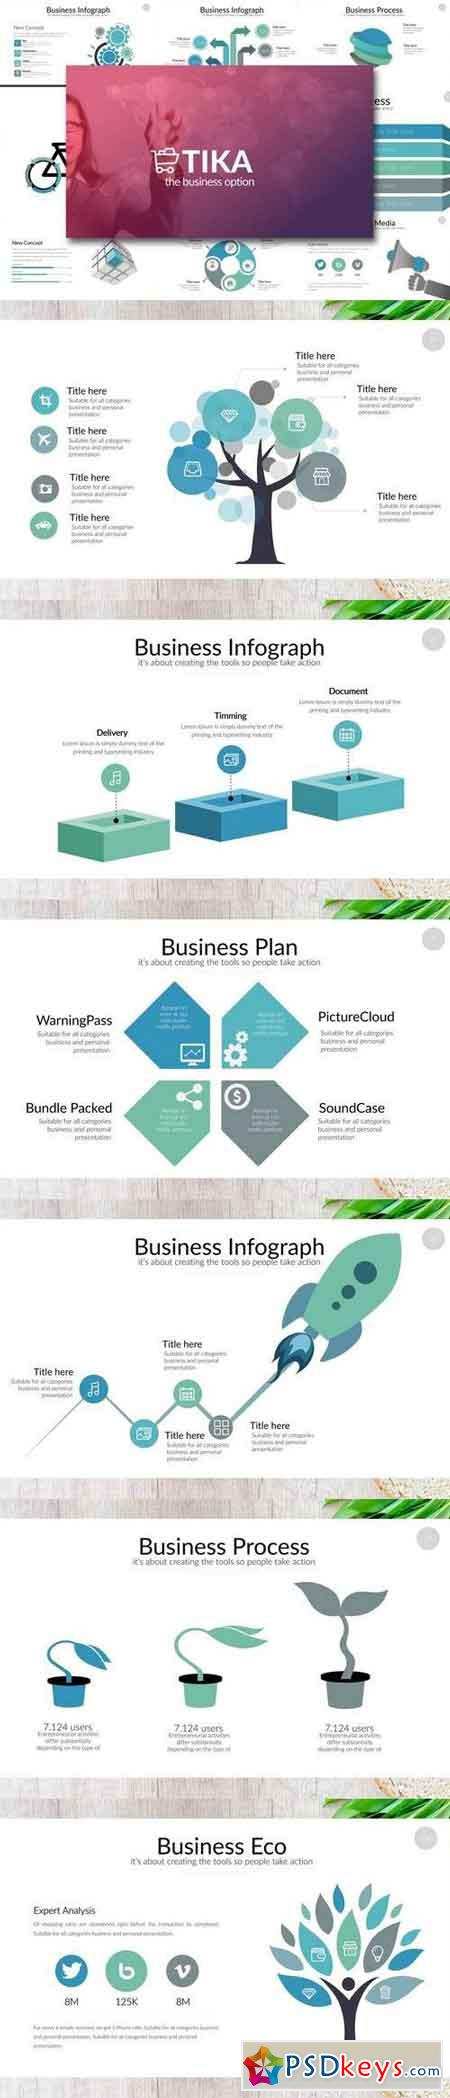 TIKA Powerpoint Template